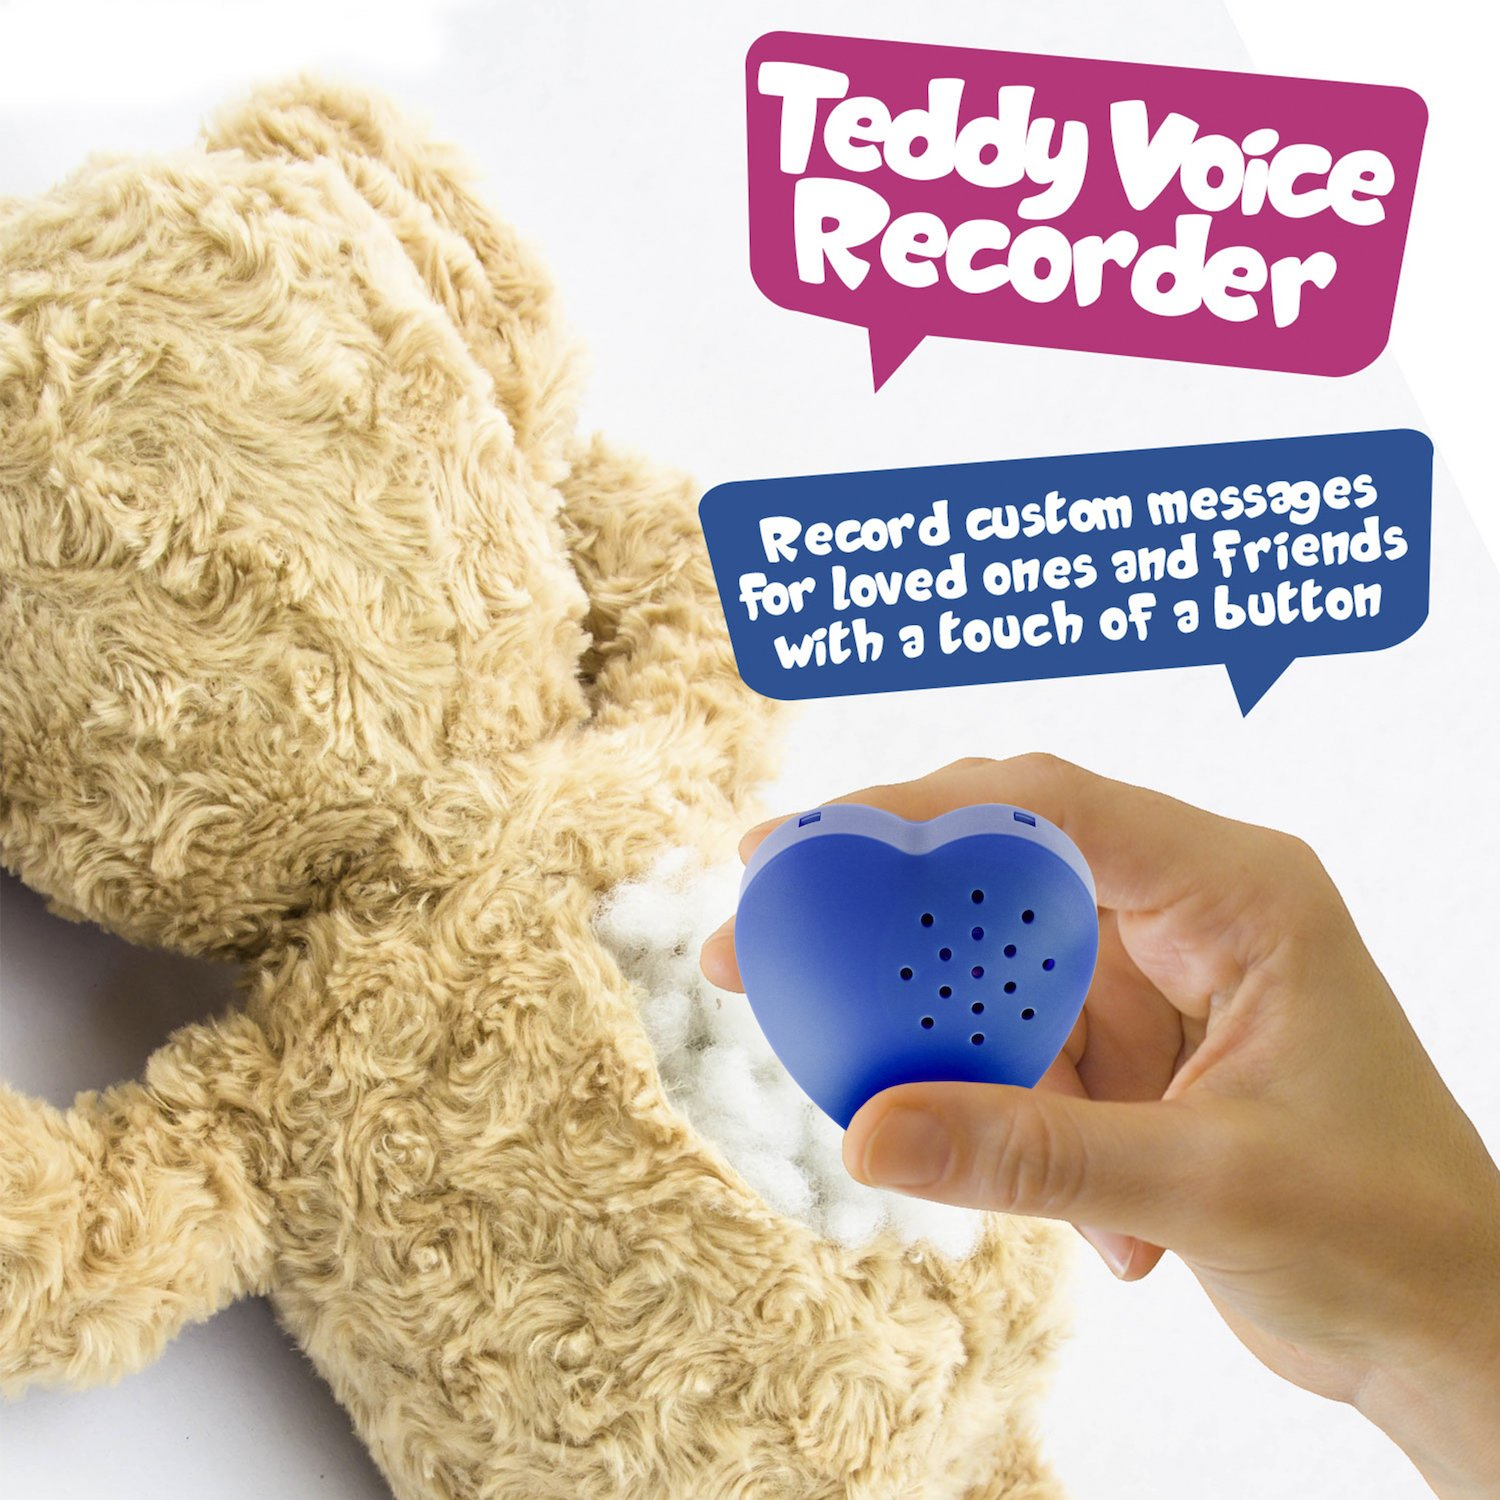 Amazon.com: 2 Pack, Inventiv 30 Second Voice Sound, Recorder Module for Plush Toy, Stuffed Teddy Bear Animal Recordable Heart, Record Custom Messages ...